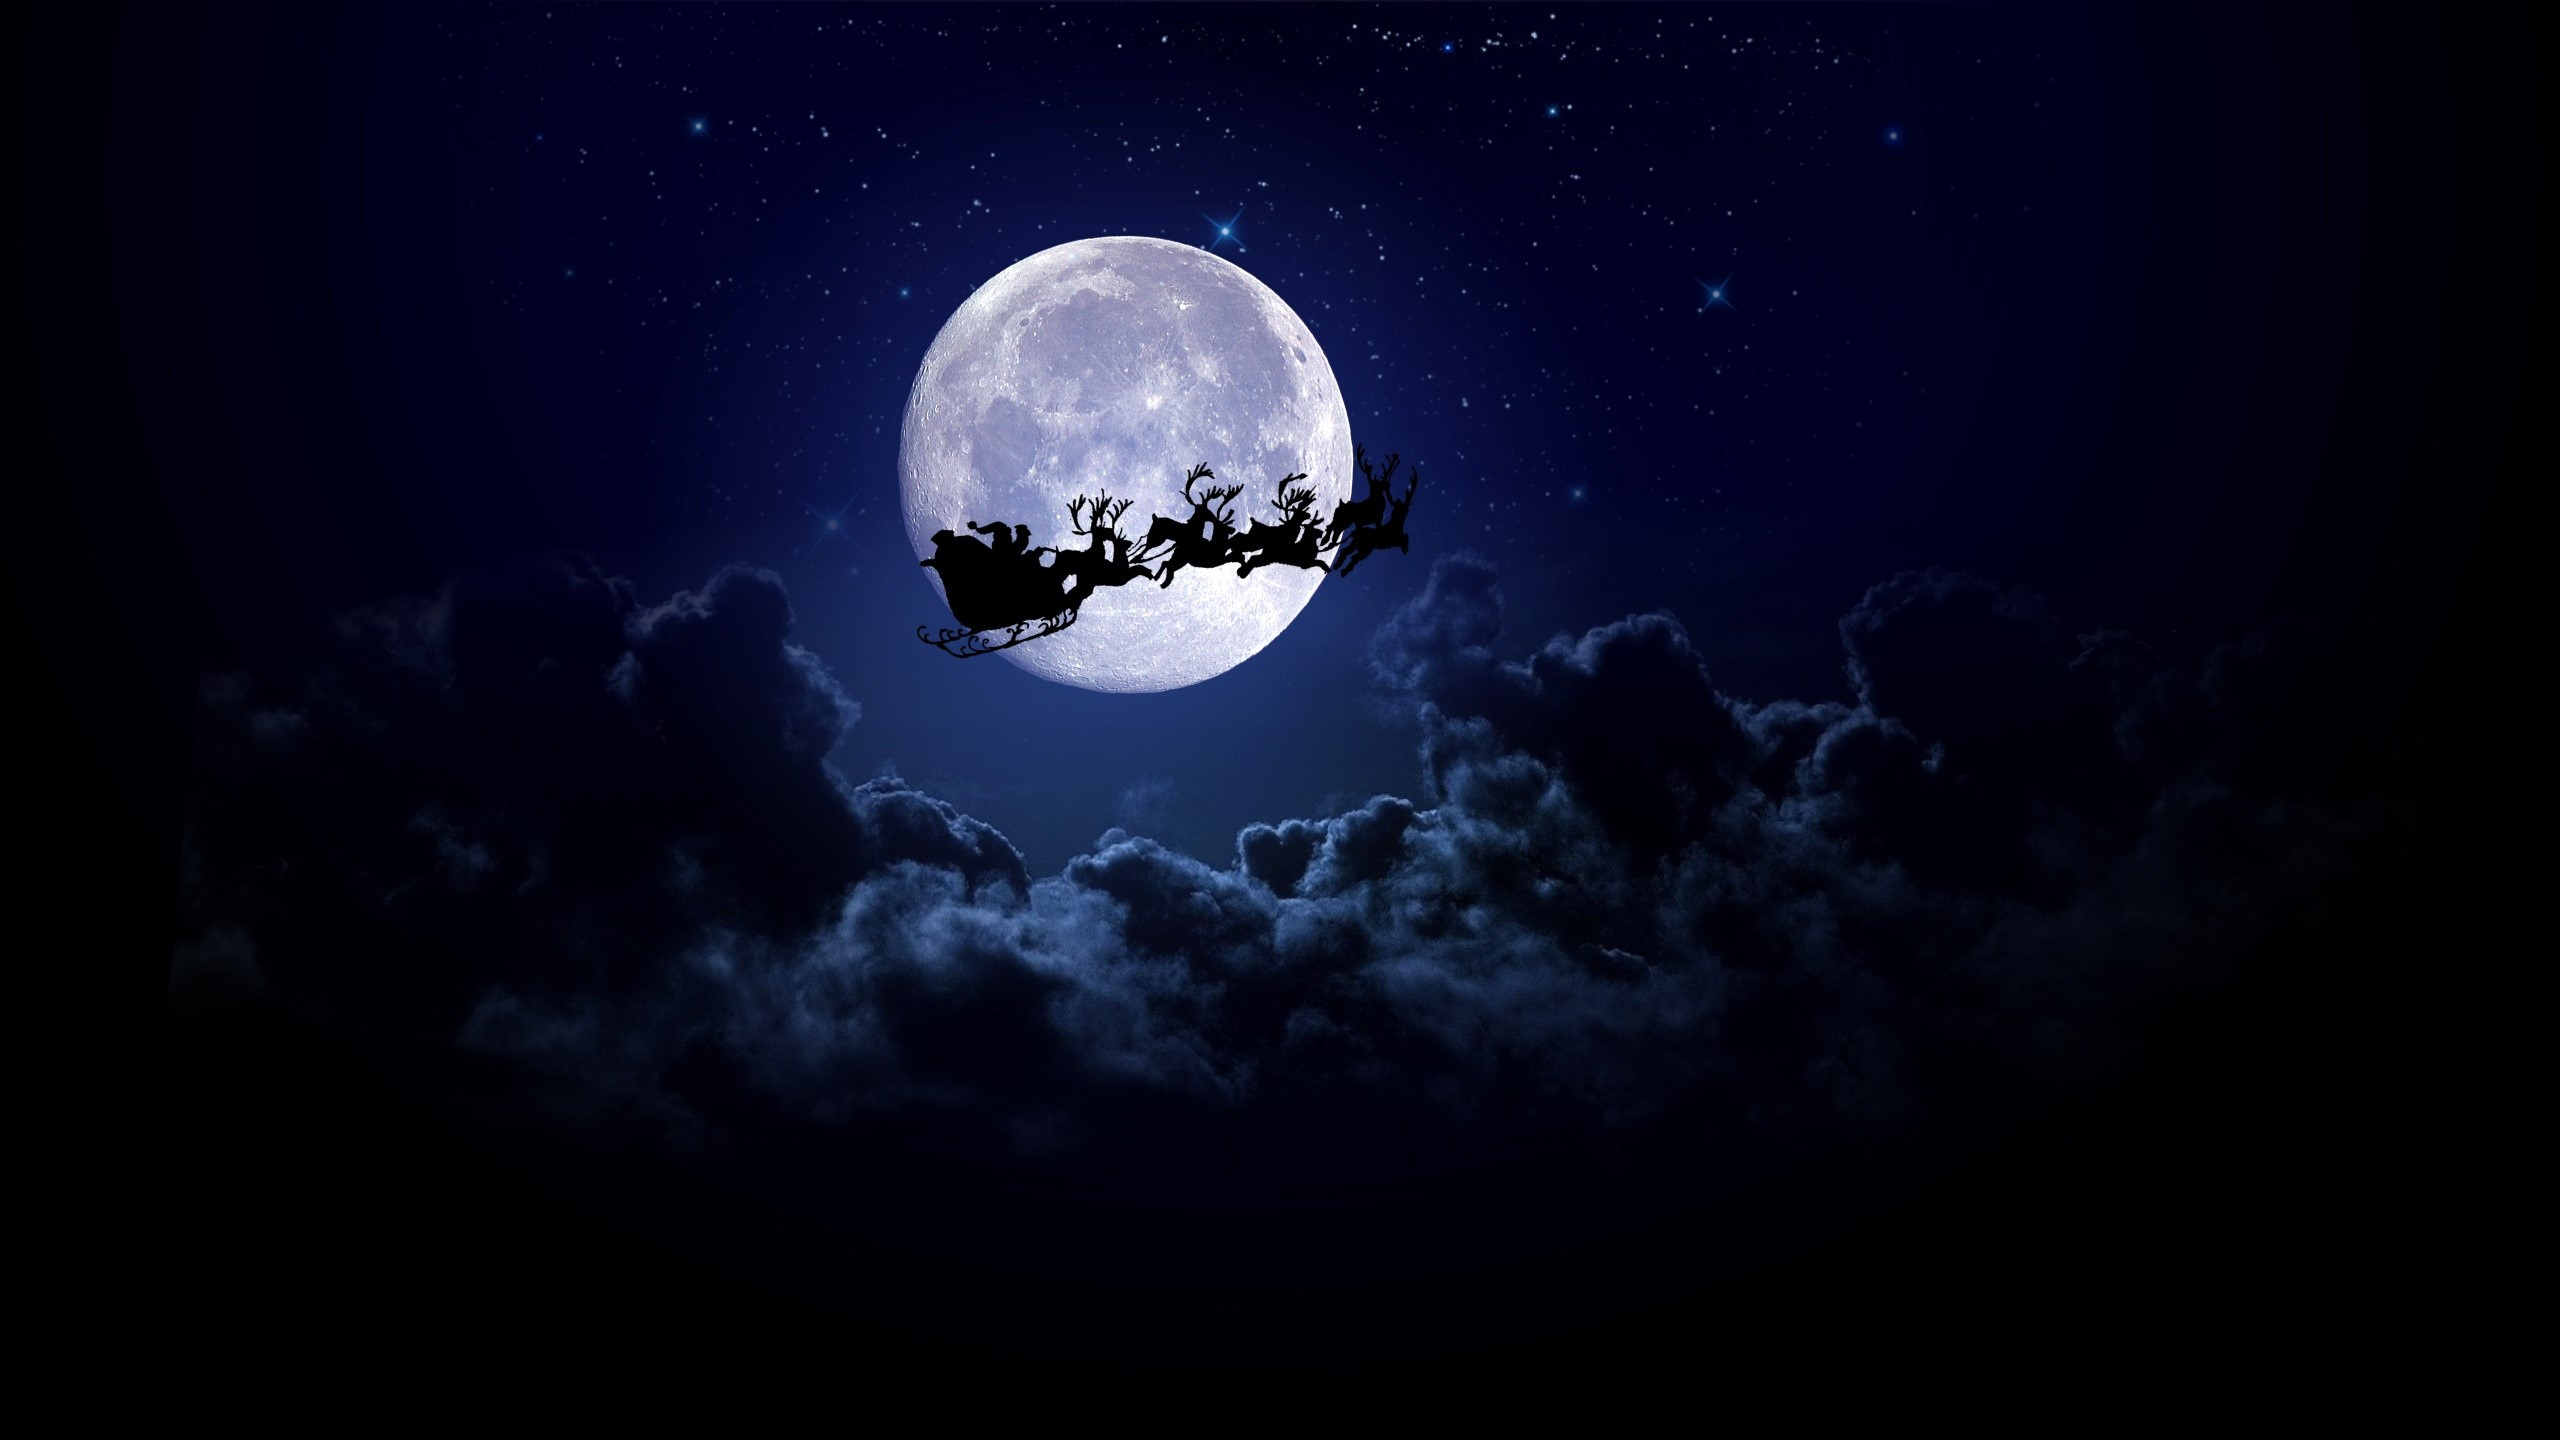 Wallpaper Santa on the Moon